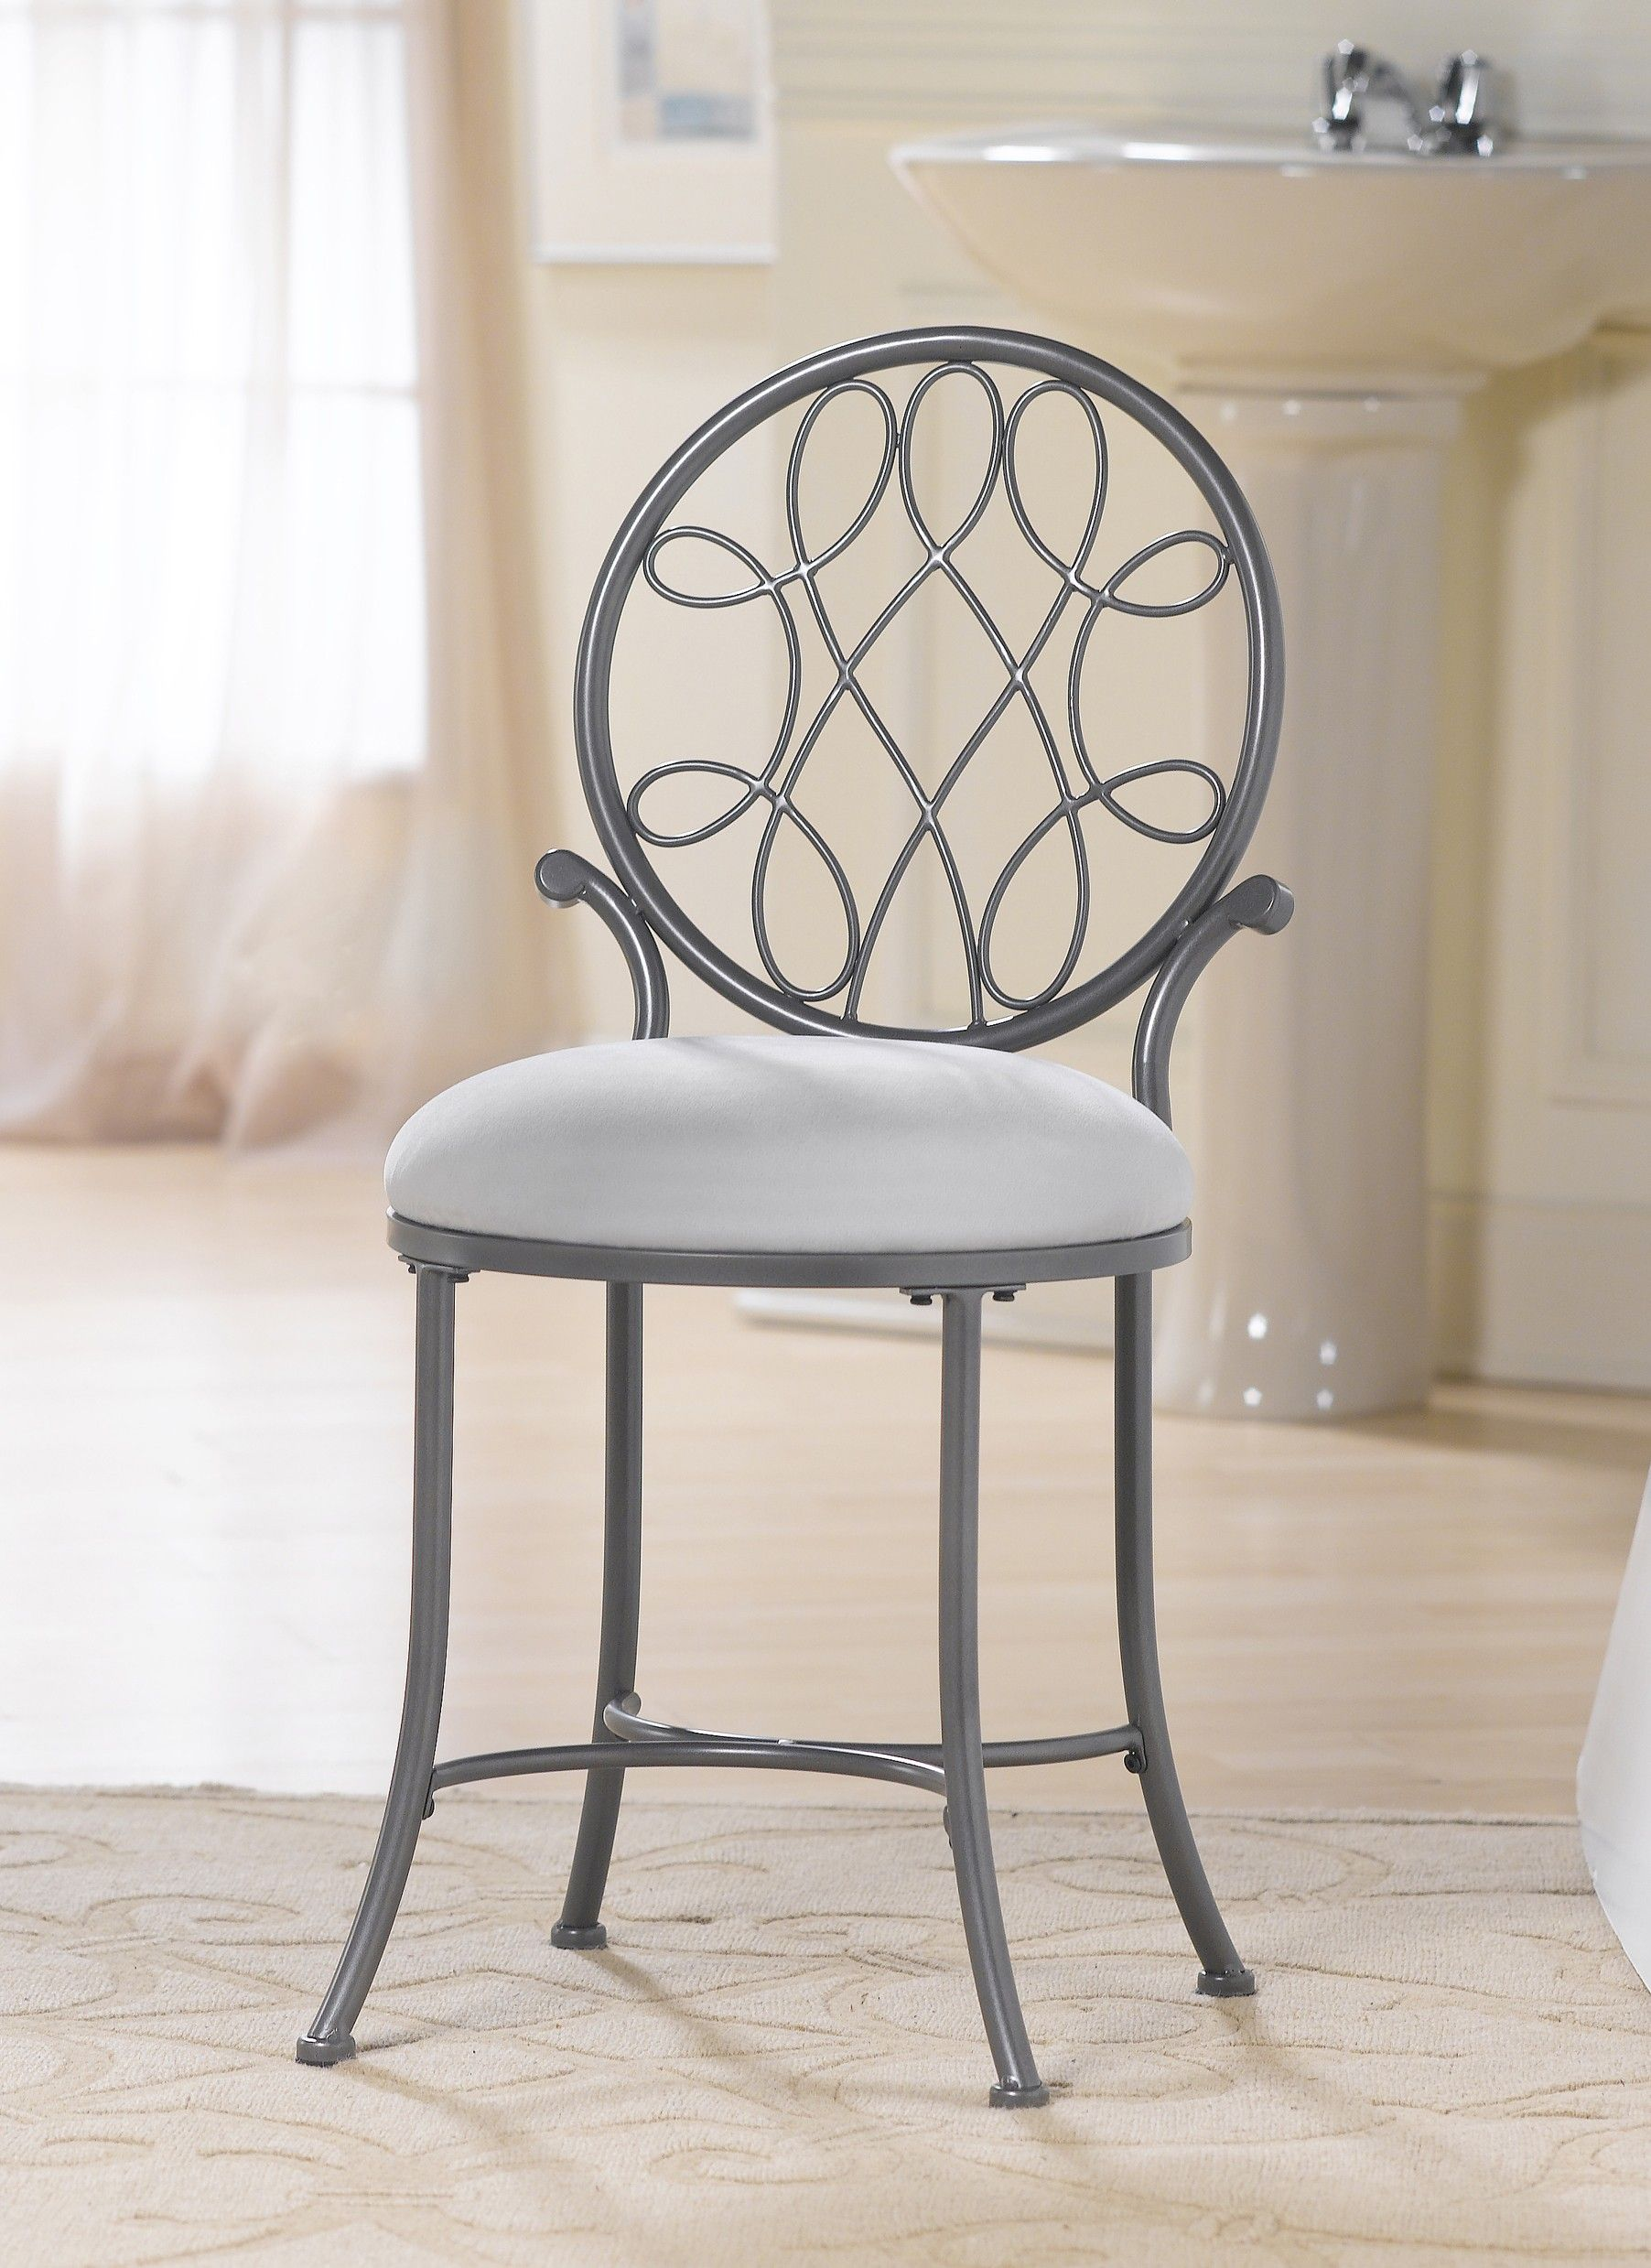 Bathroom Furniture Gray Polished Wrought Iron Vanity Chair With